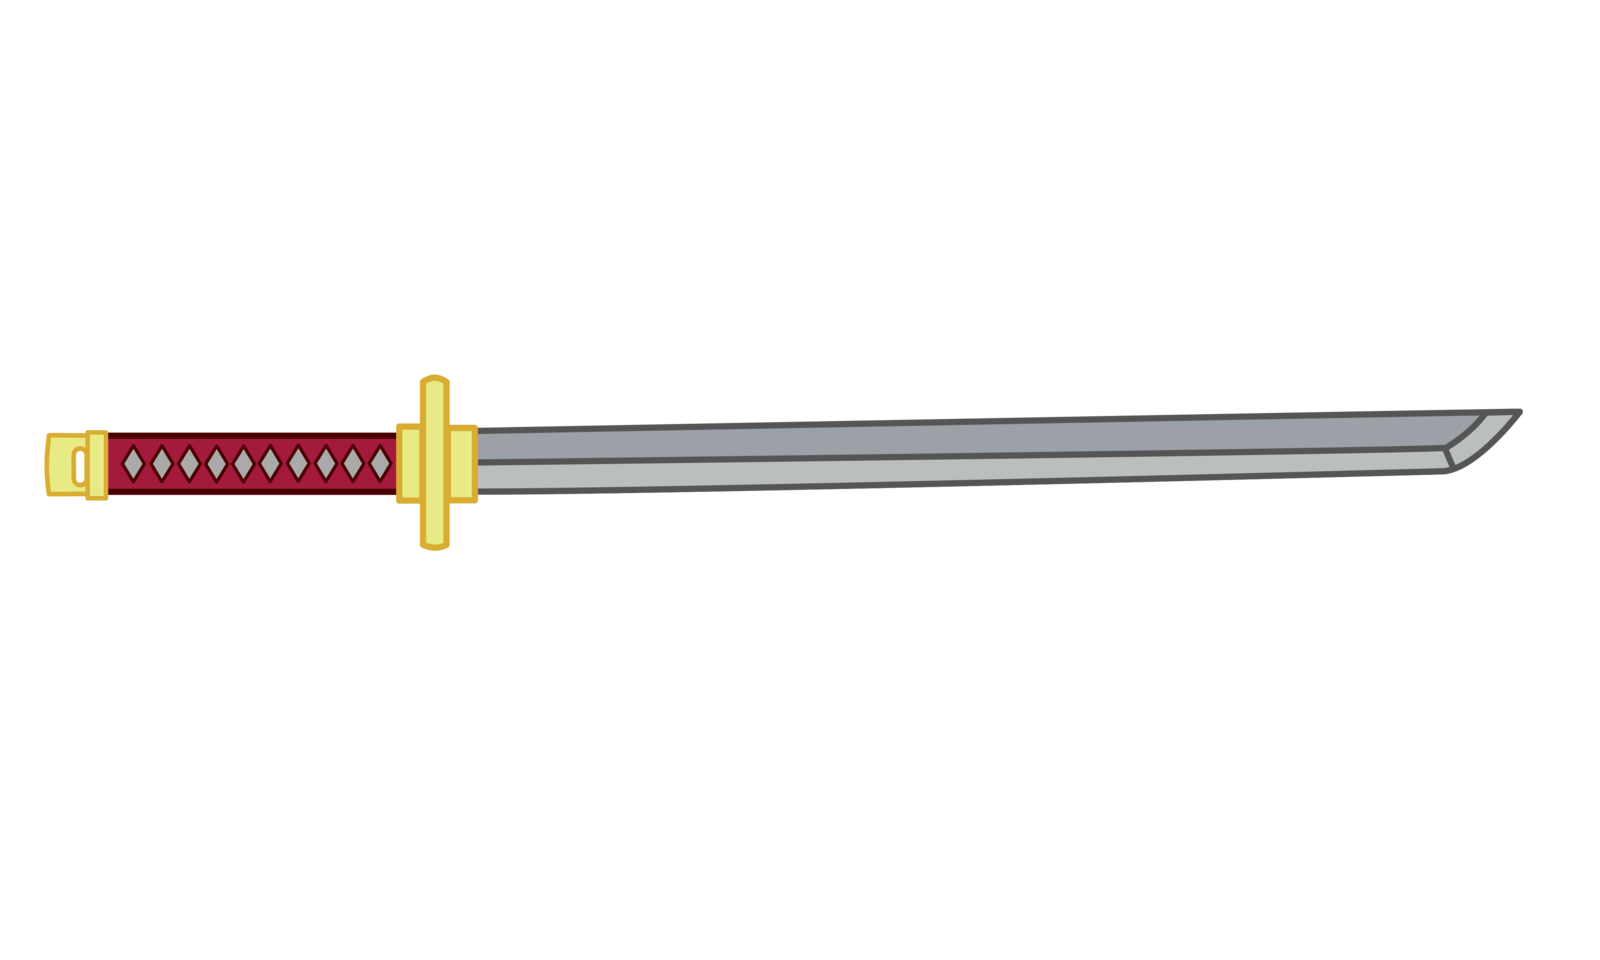 katana png images are download crazypngm crazy png images download #28753